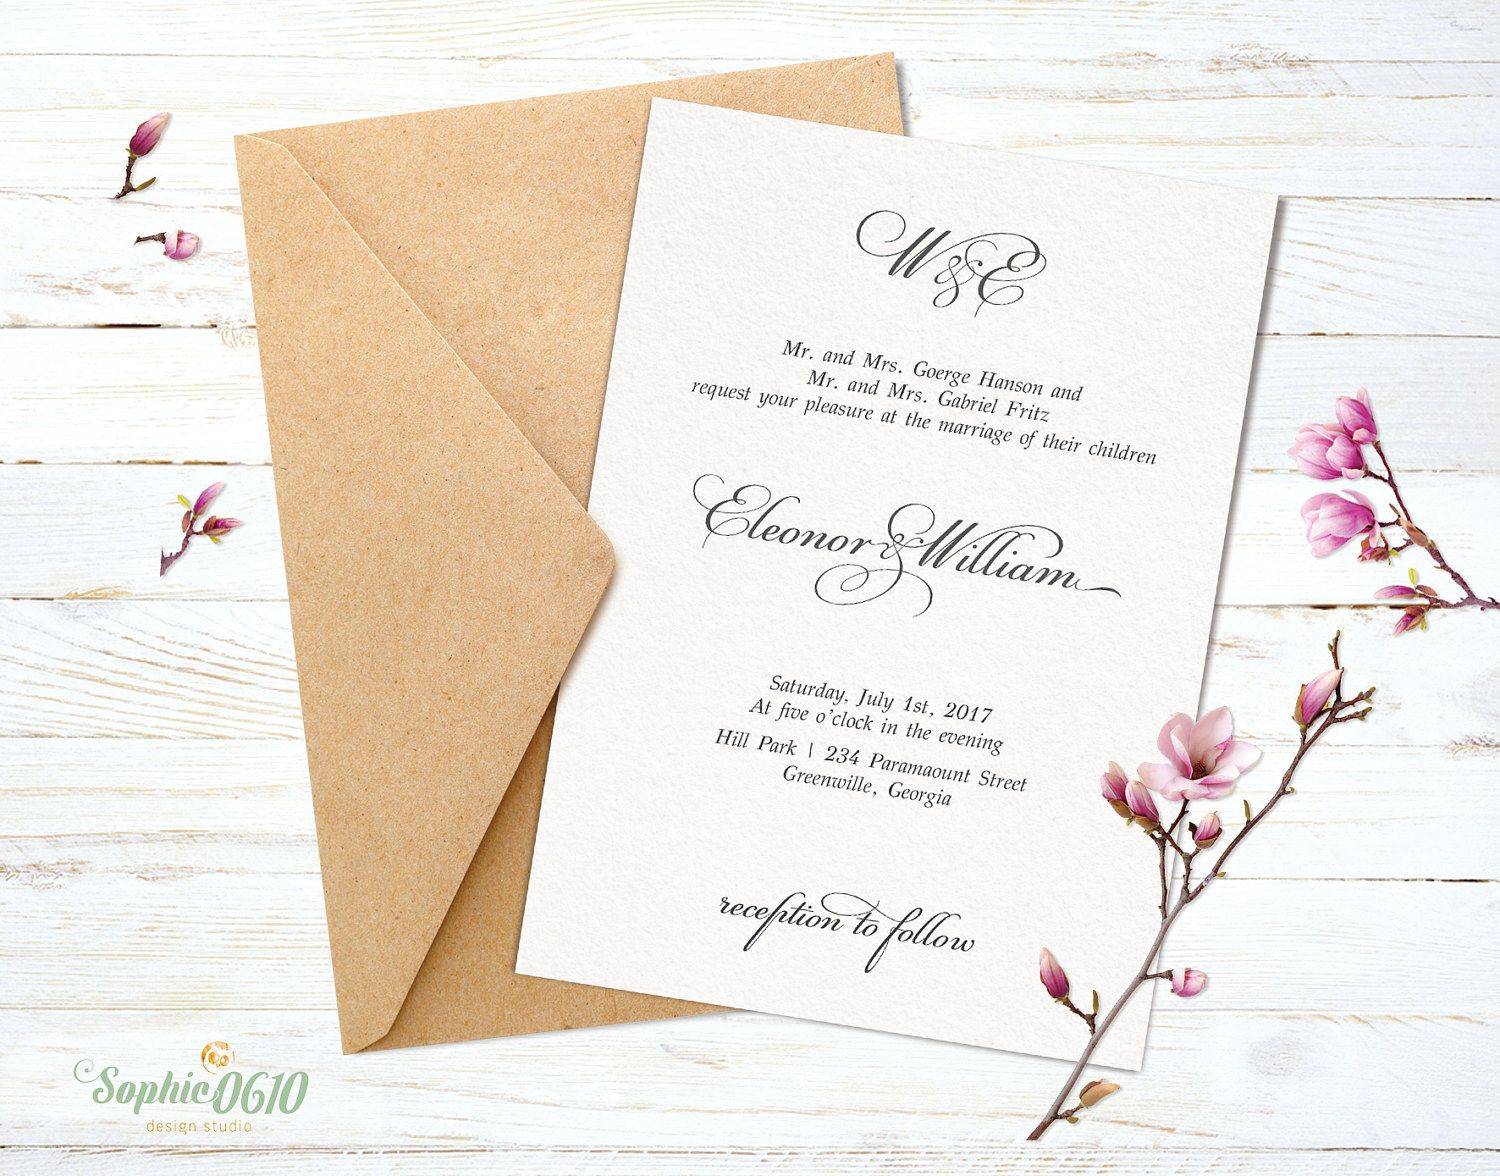 Printable simple wedding invitation with calligraphy text by Sophie0610Designs on Etsy